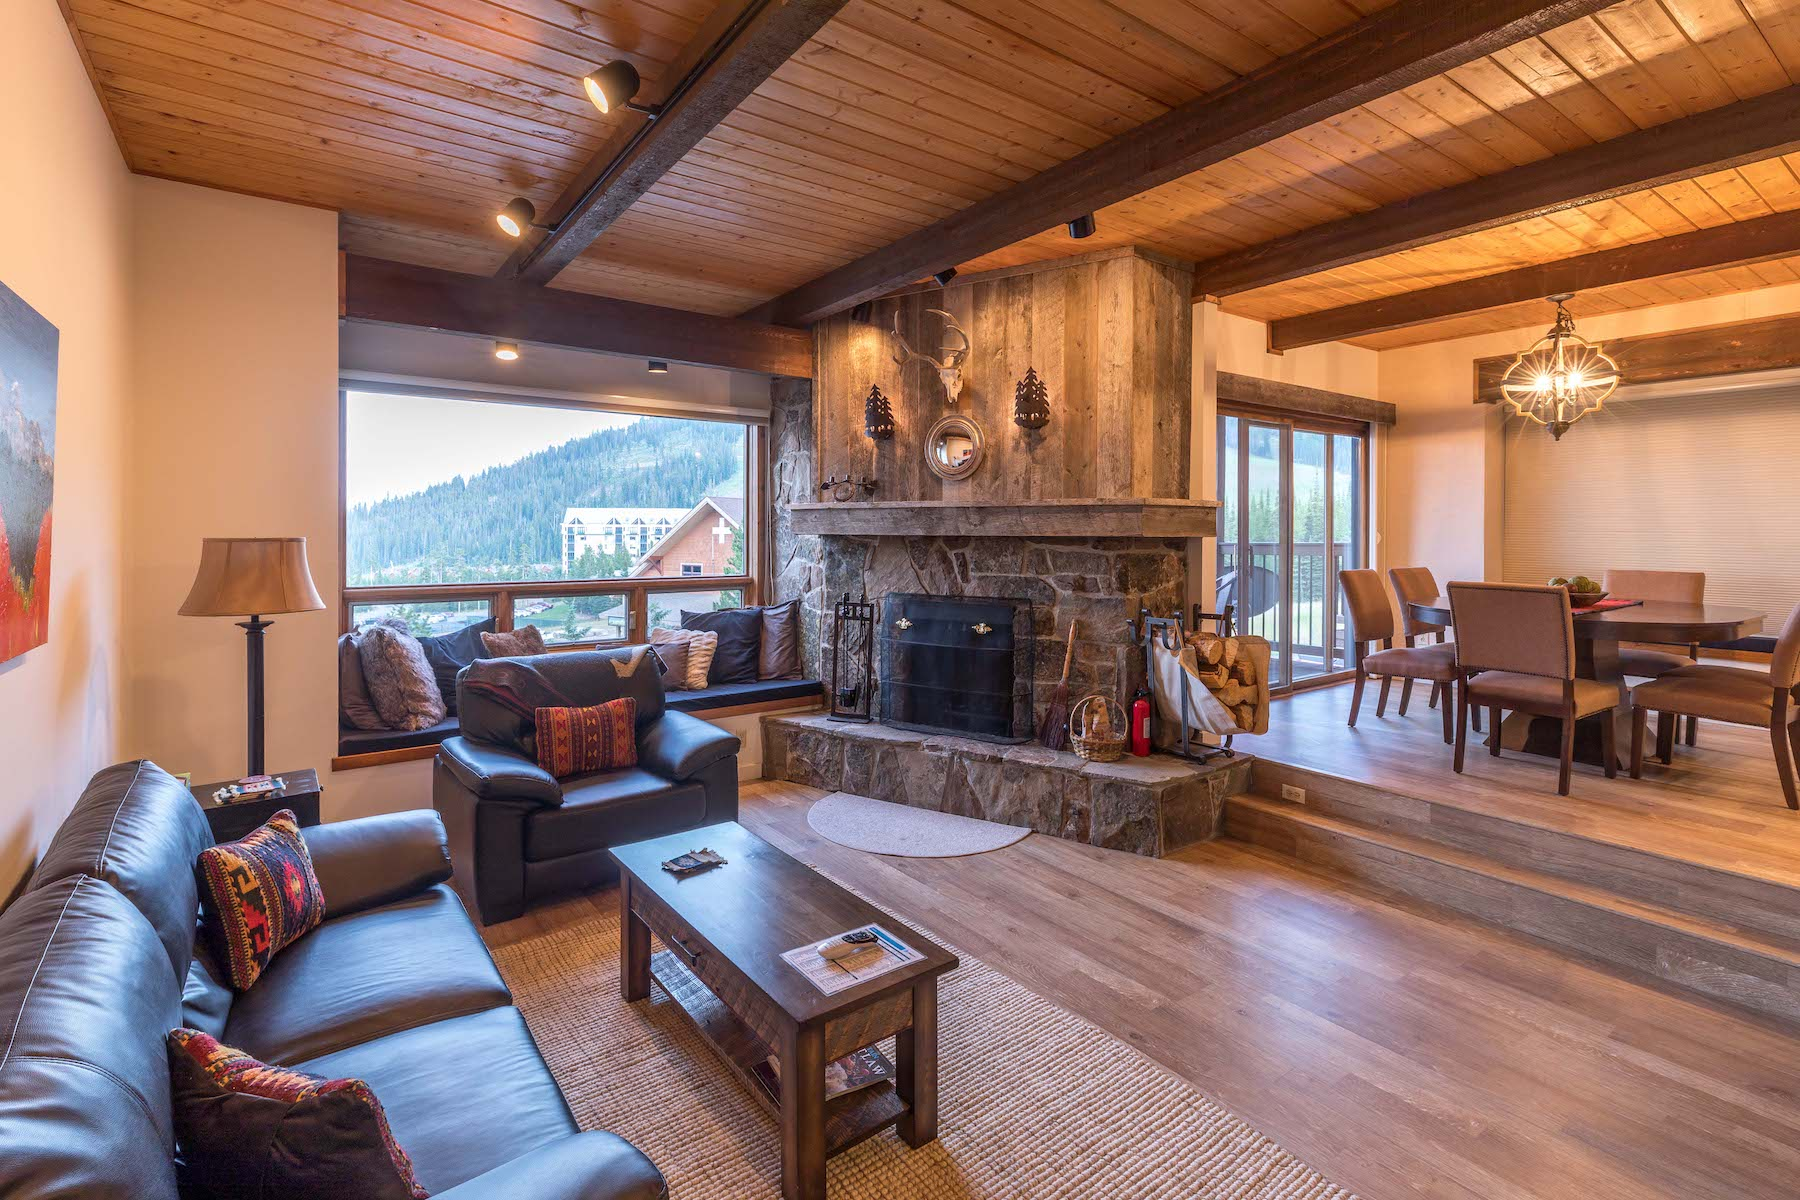 Condominium for Sale at Beaverhead Condo 1405 1 Beaverhead Drive Unit 1405 Big Sky, Montana 59716 United States